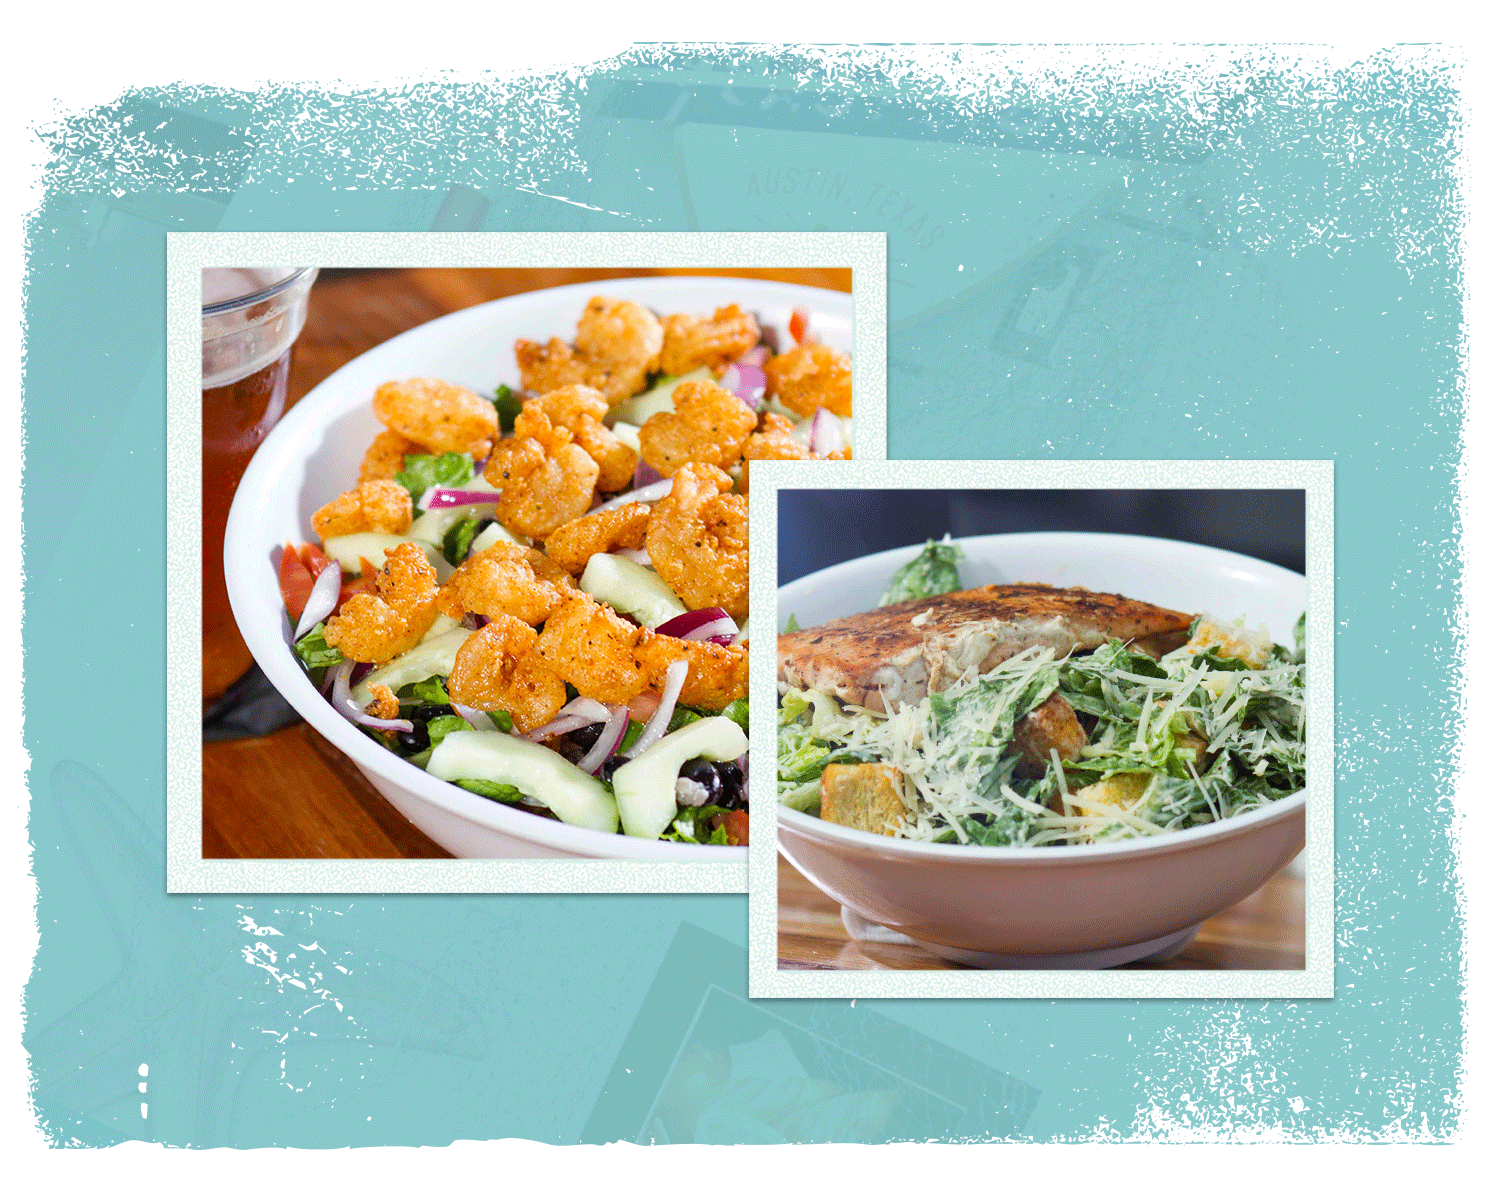 Salads - Dressings: Lemon vinaigrette, Ranch, Creole Ranch, creamy house vinaigrette or Caesar